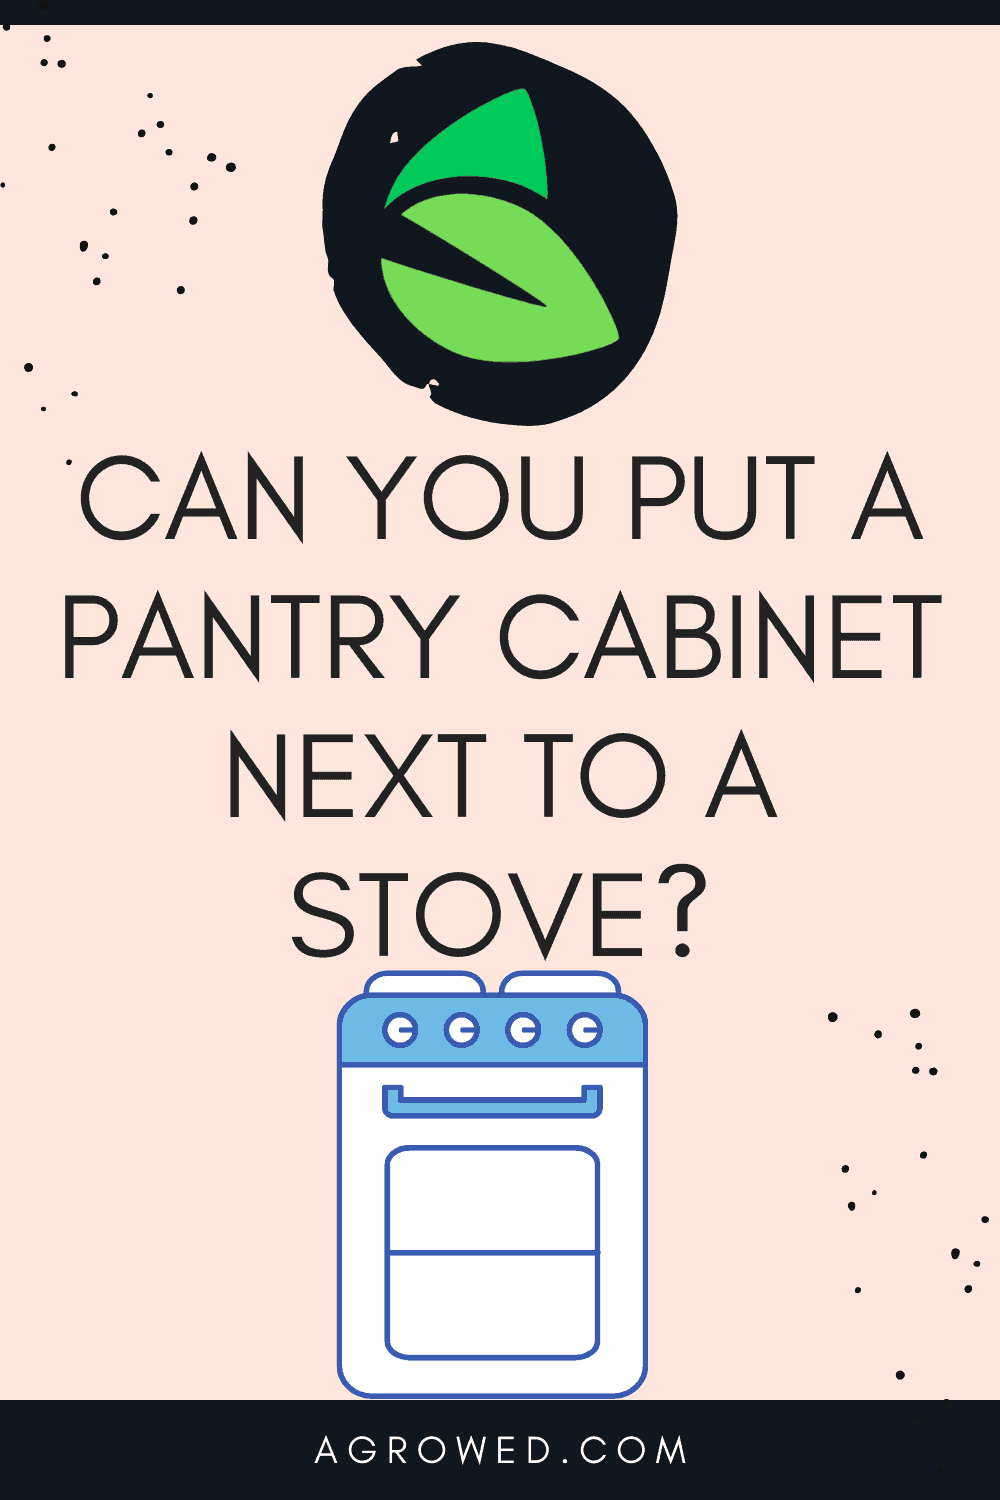 Can You Put a Pantry Cabinet Next to a Stove